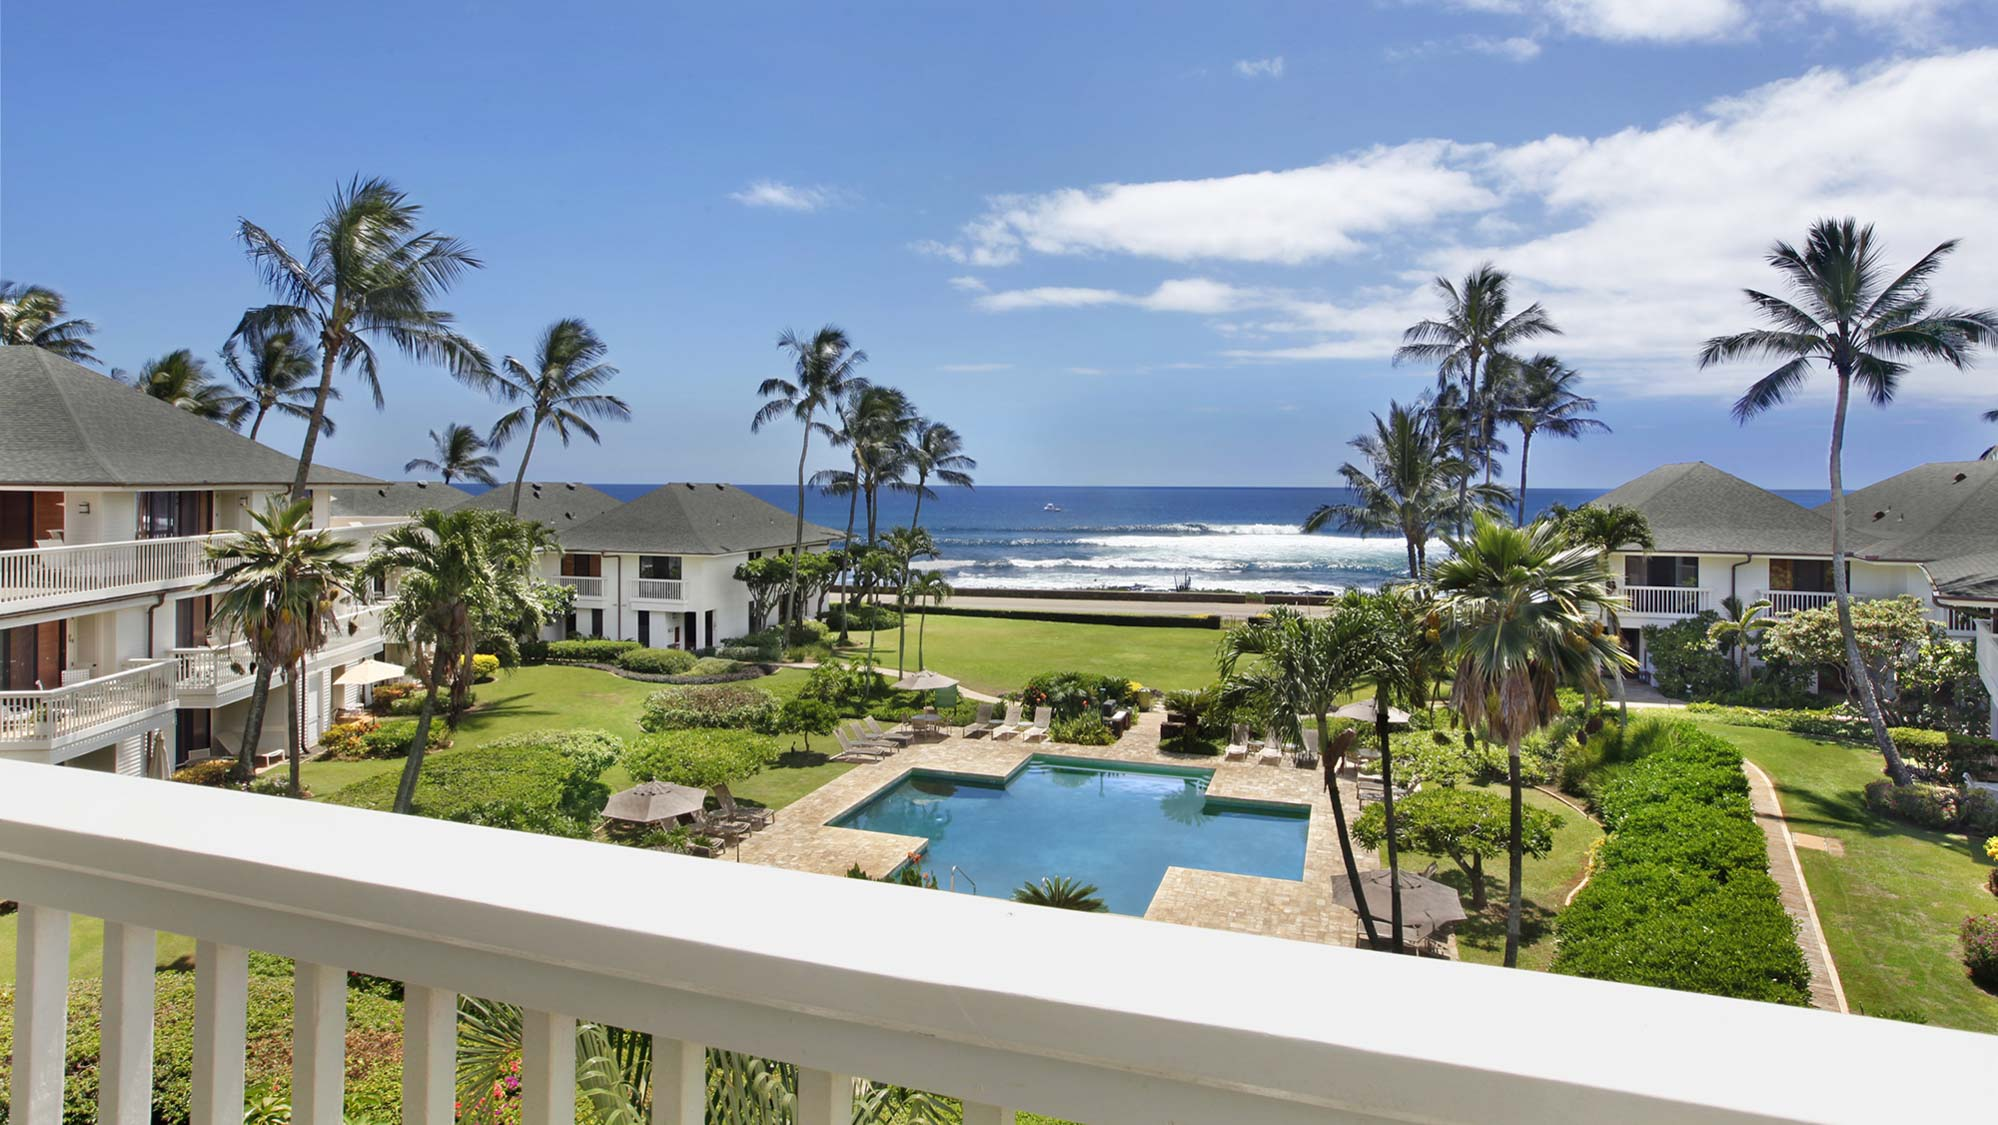 Poipu Kapili Resort #27 - Ocean View Penthouse Lanai View - Parrish Kauai